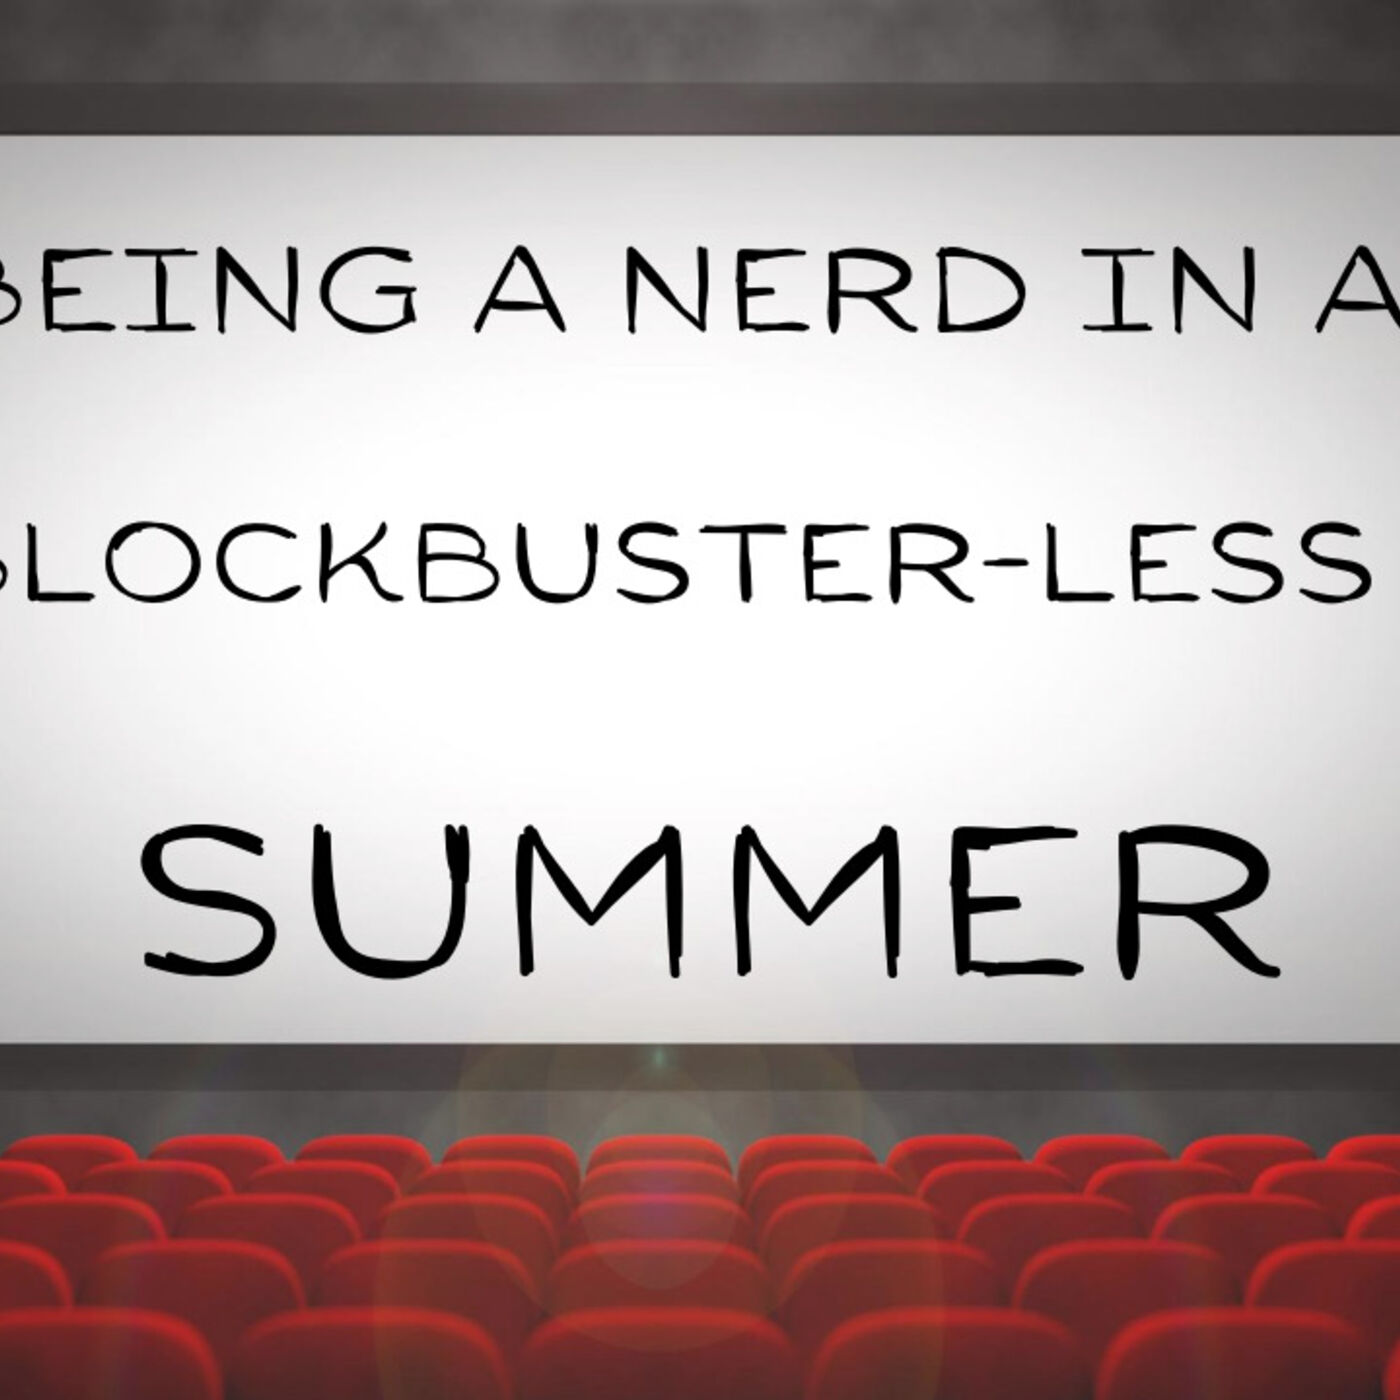 Blockbuster-less Summer